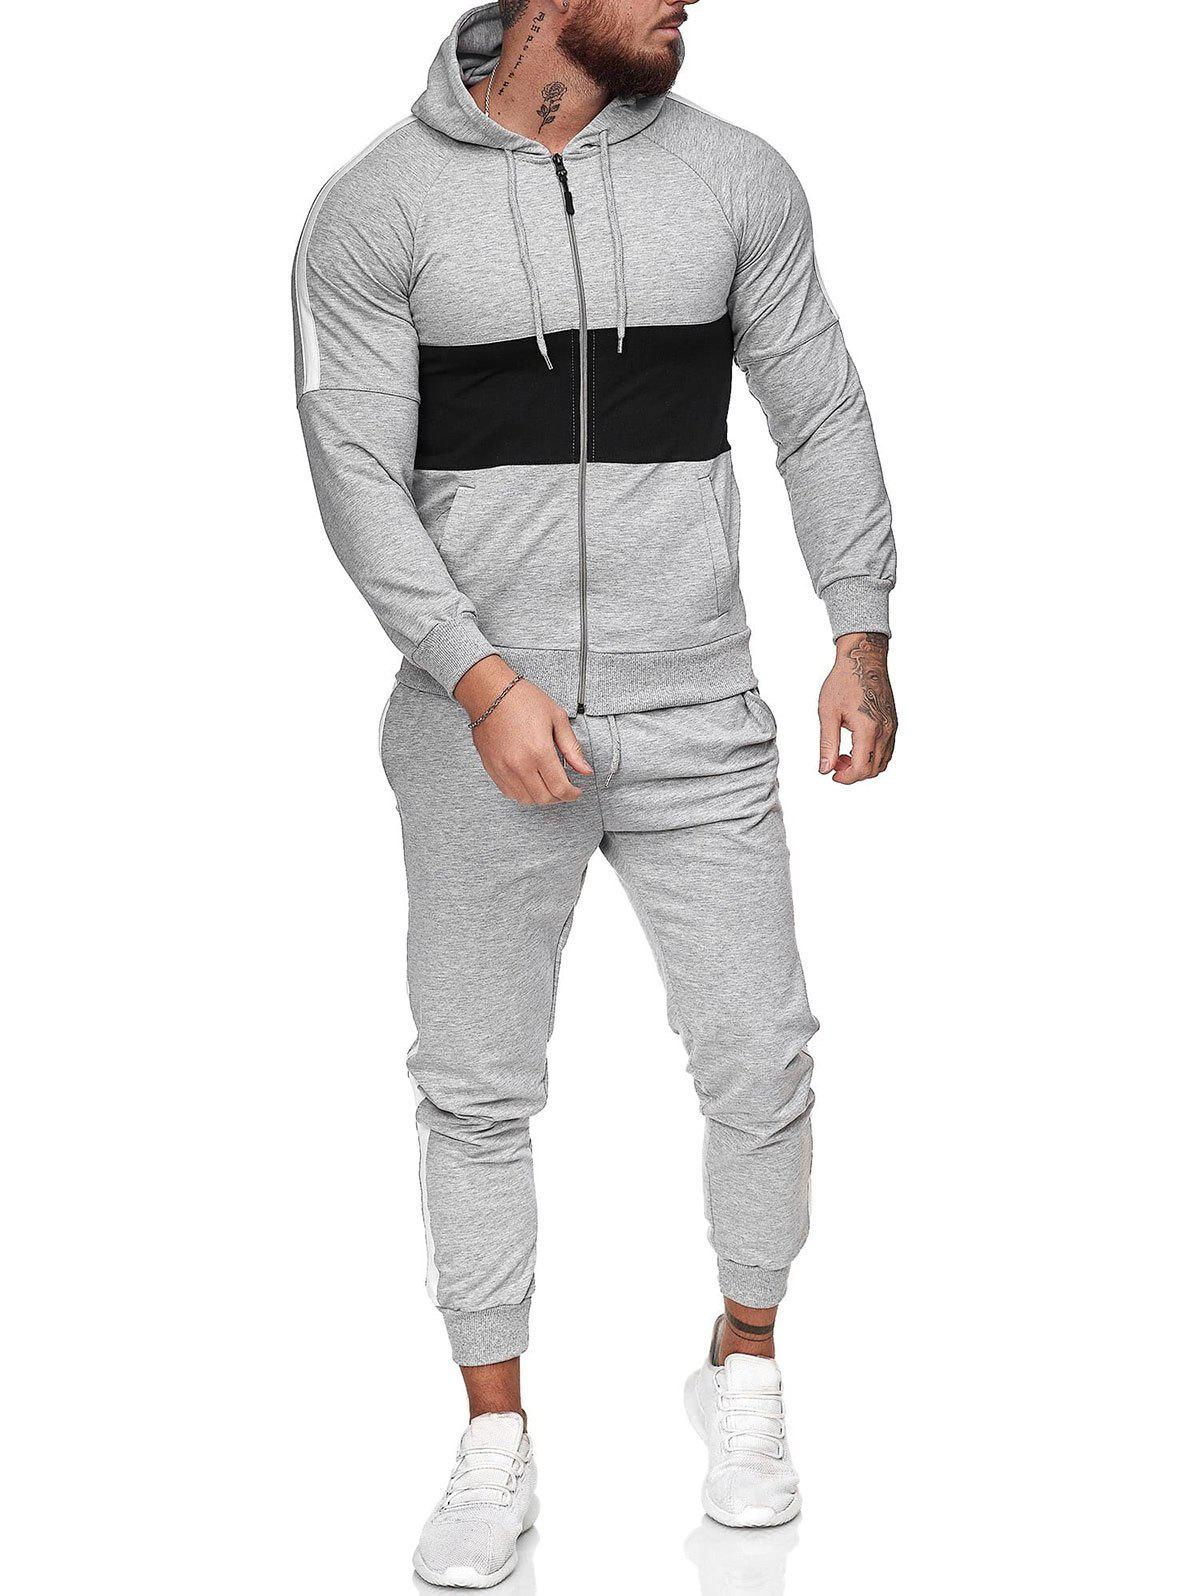 Contrast Zip Up Hoodie Jacket and Pants Two Piece Sports Set - LIGHT GRAY L